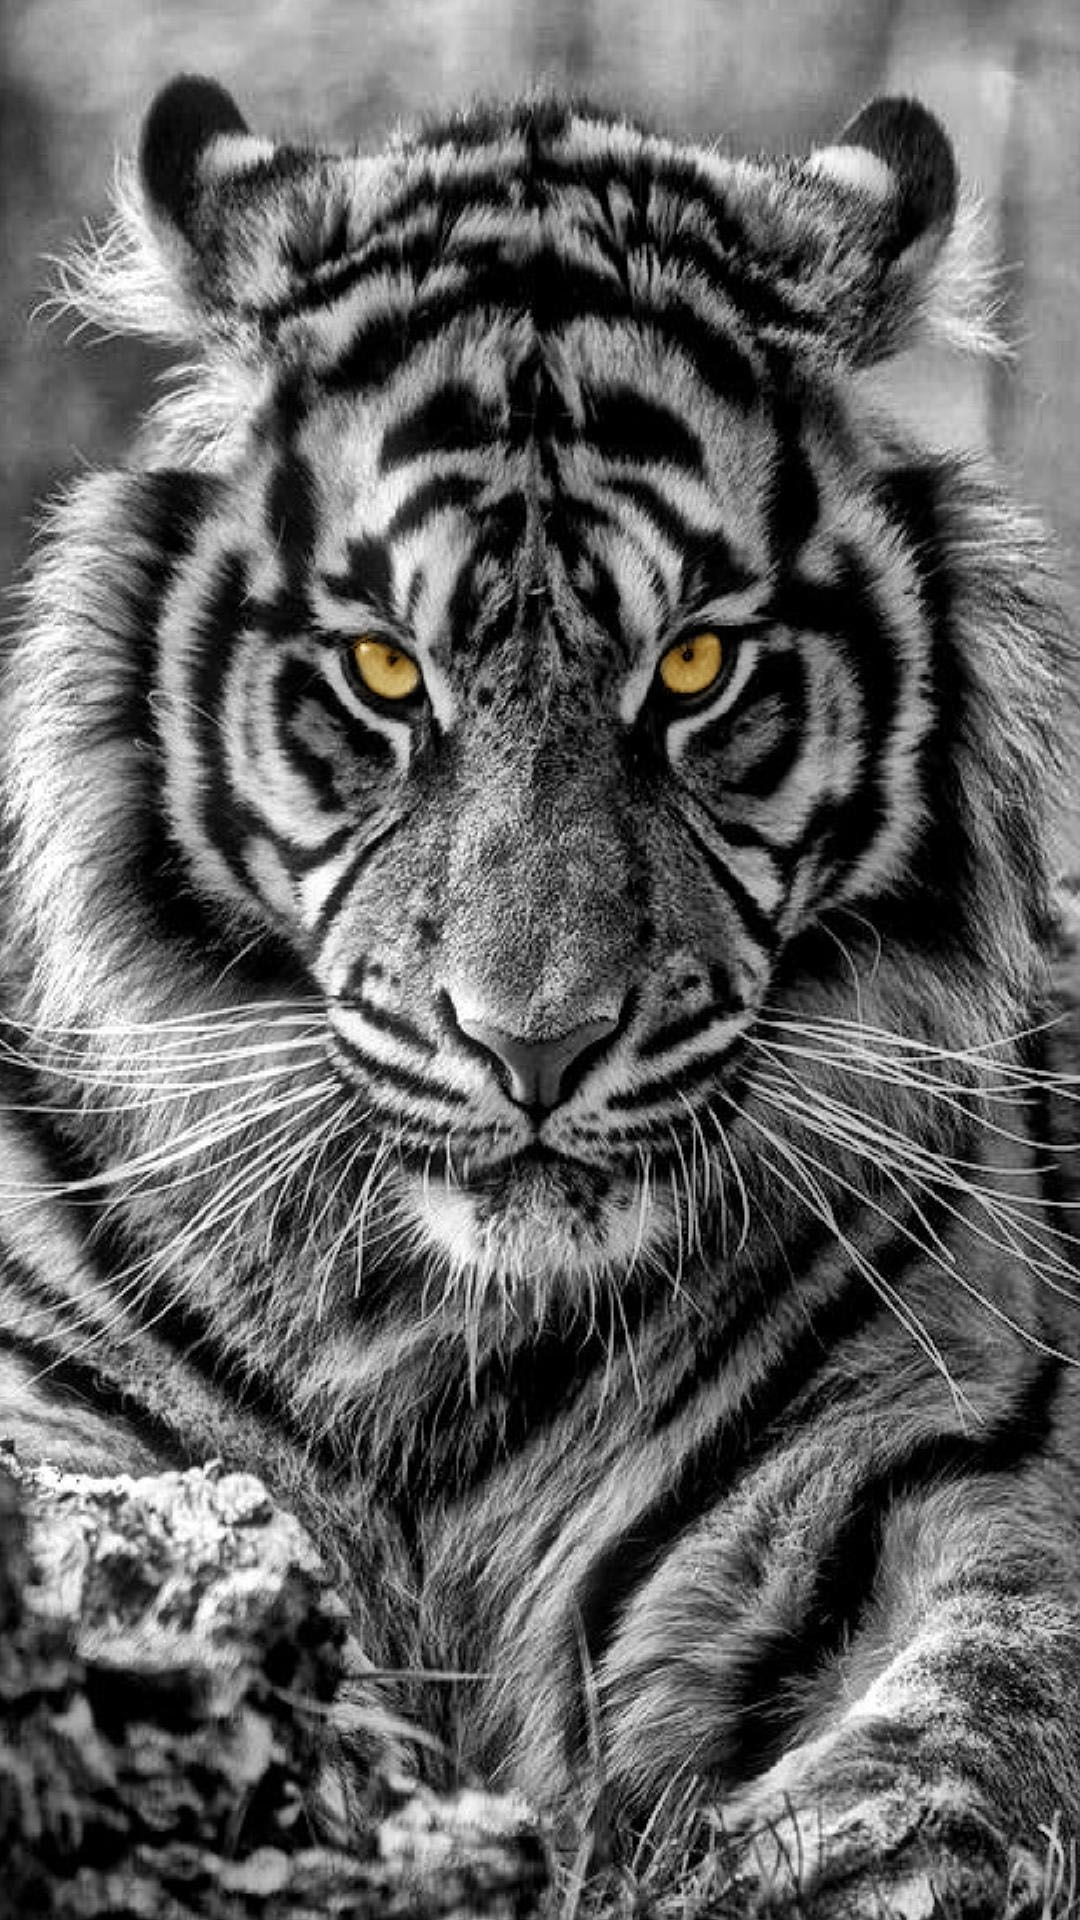 Tiger Wallpaper Mobile On High Definition Wallpaper On Flowerswallpaper Info If You Like It Iphone Andr Tiger Photography White Tiger Tattoo Tiger Pictures